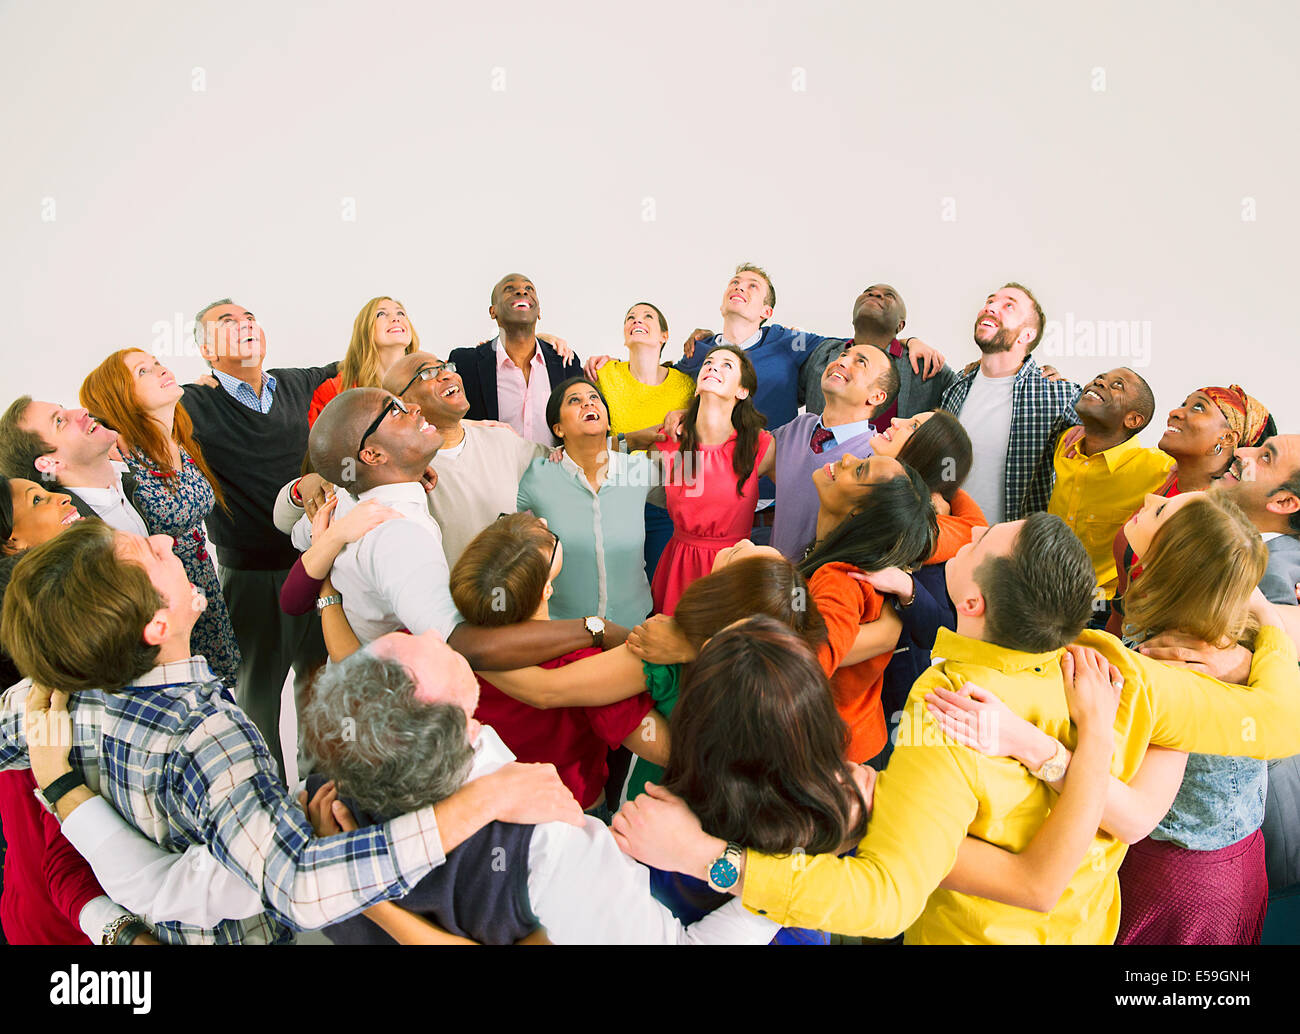 Diverse crowd in huddle - Stock Image